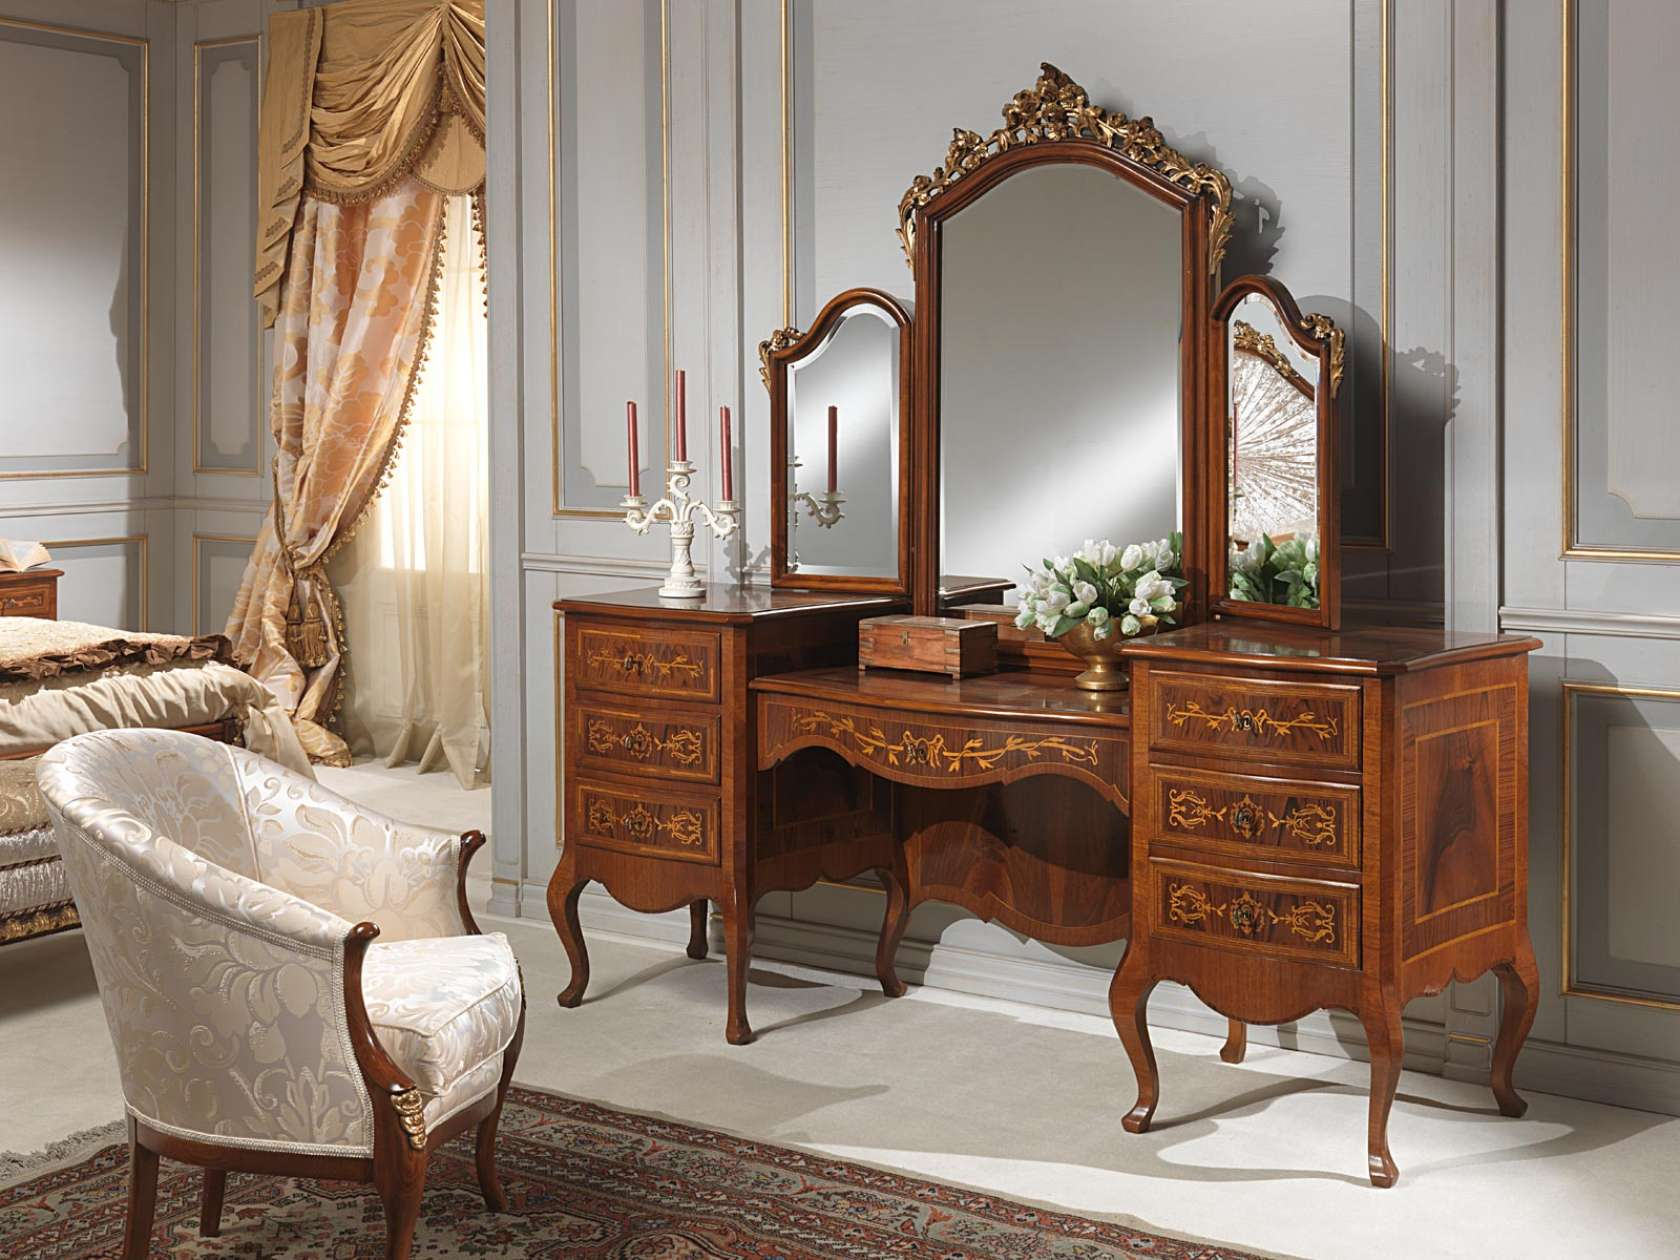 Bedroom furniture with mirror